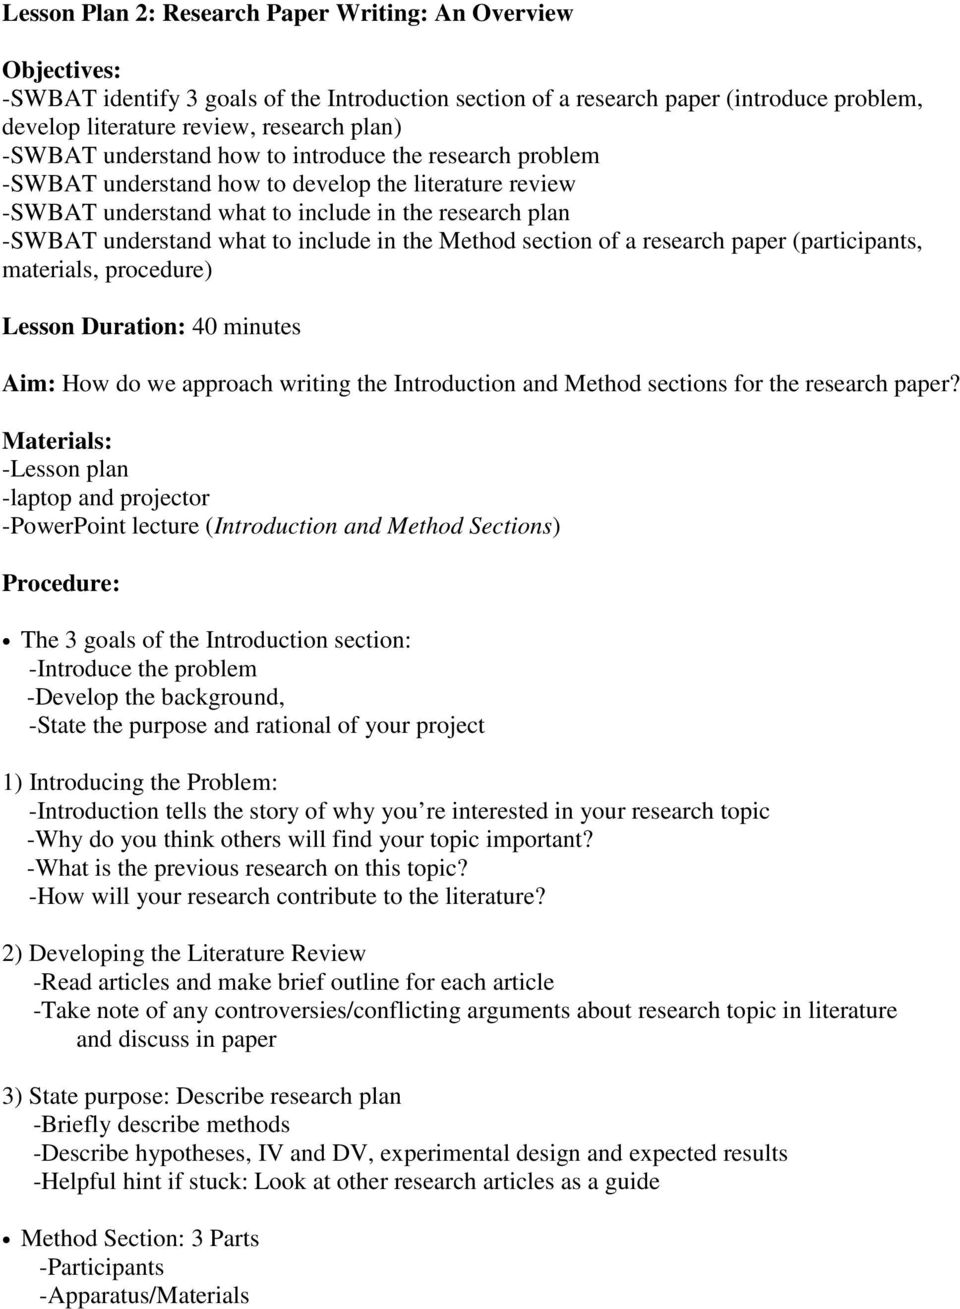 022 Page 16 Introduction To Research Paper Outstanding Ppt How Write In An For A Powerpoint Full